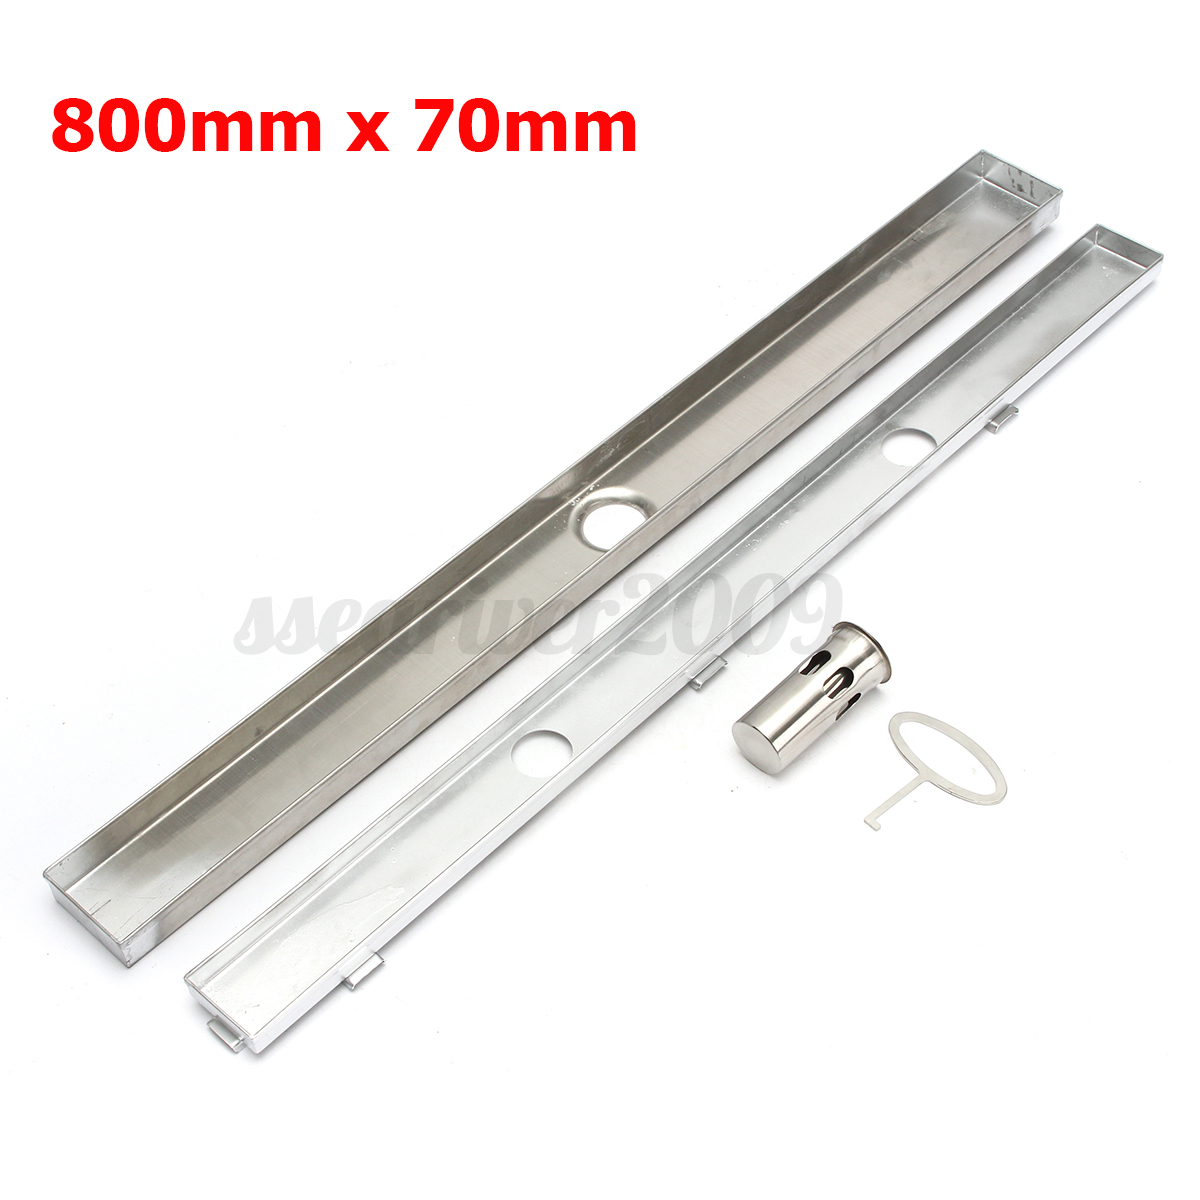 600-1000MM Invisible Tile Insert Shower Grate Drain Waste Floor Linear Bathroom